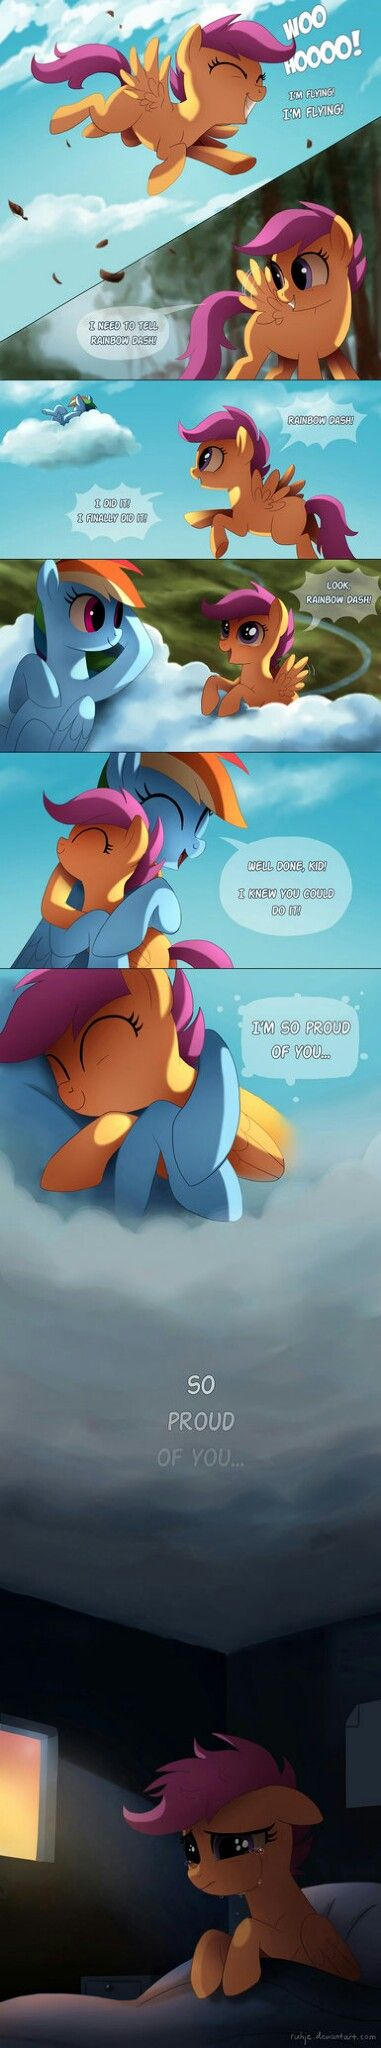 140 Rainbow Dash And Scootaloo Ideas Rainbow Dash Rainbow My Little Pony Why her wings are two small has not been definitively answered. 140 rainbow dash and scootaloo ideas